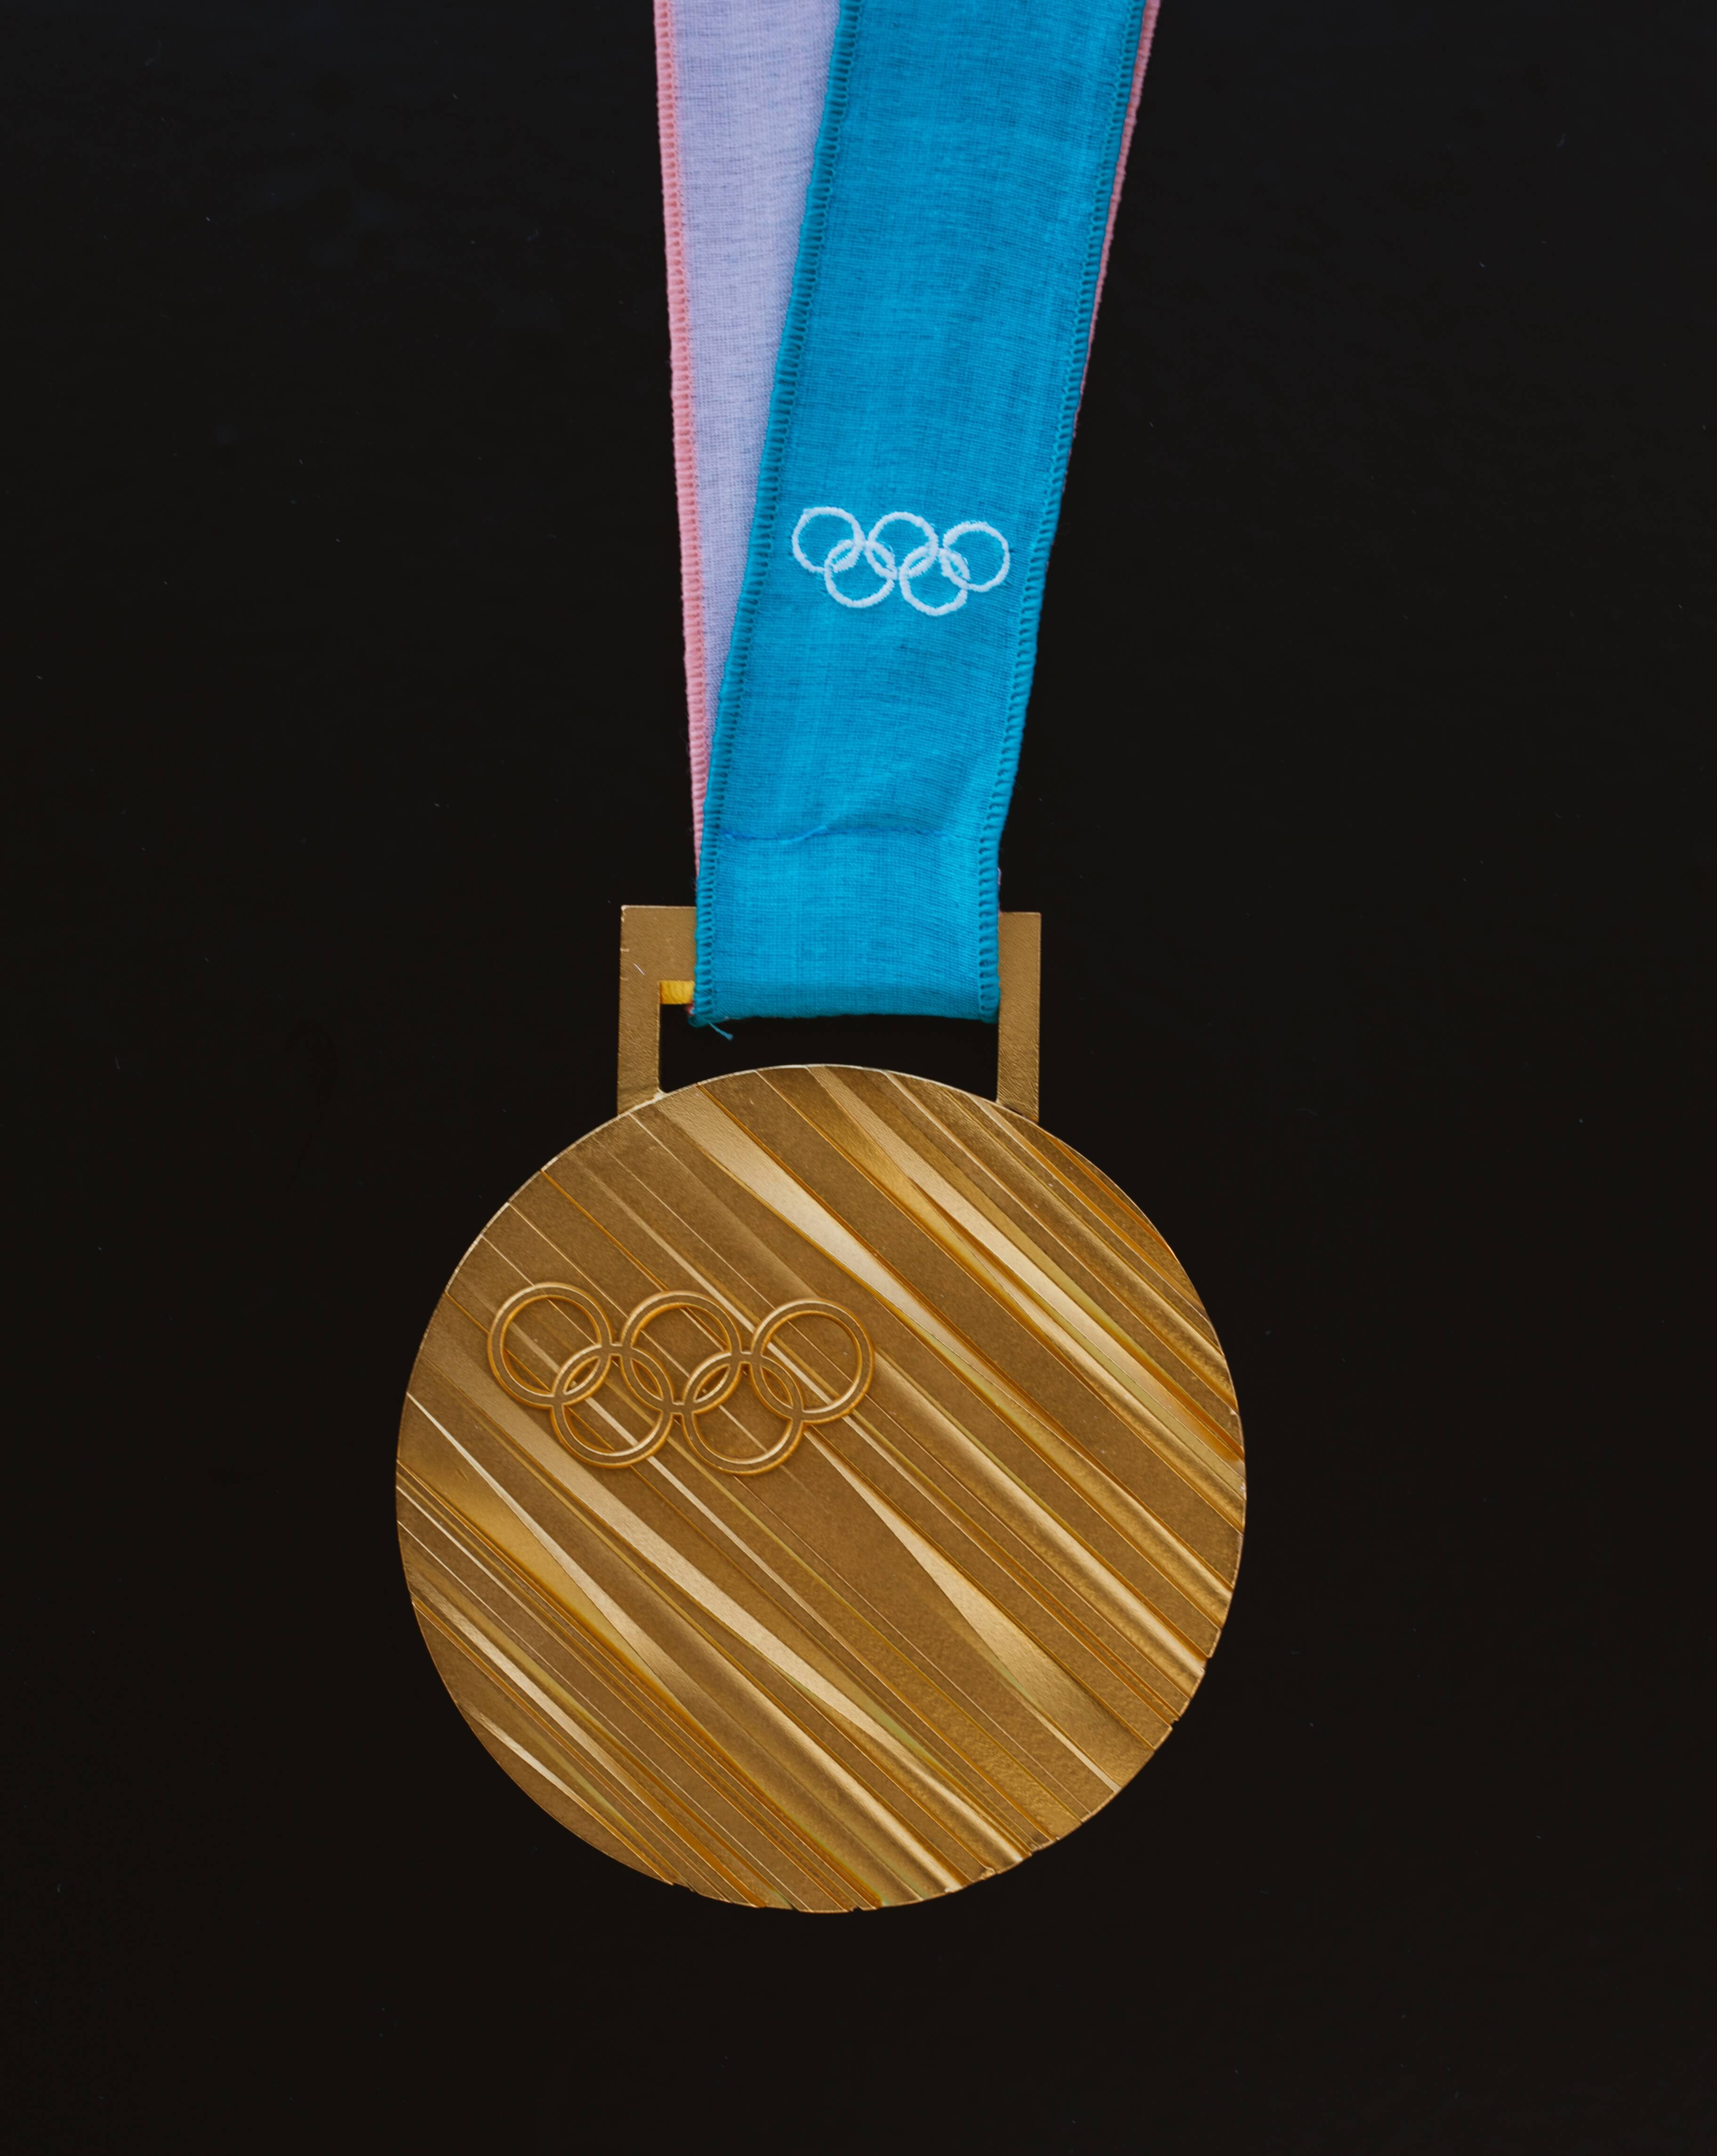 cw_sportmanagement_medal2